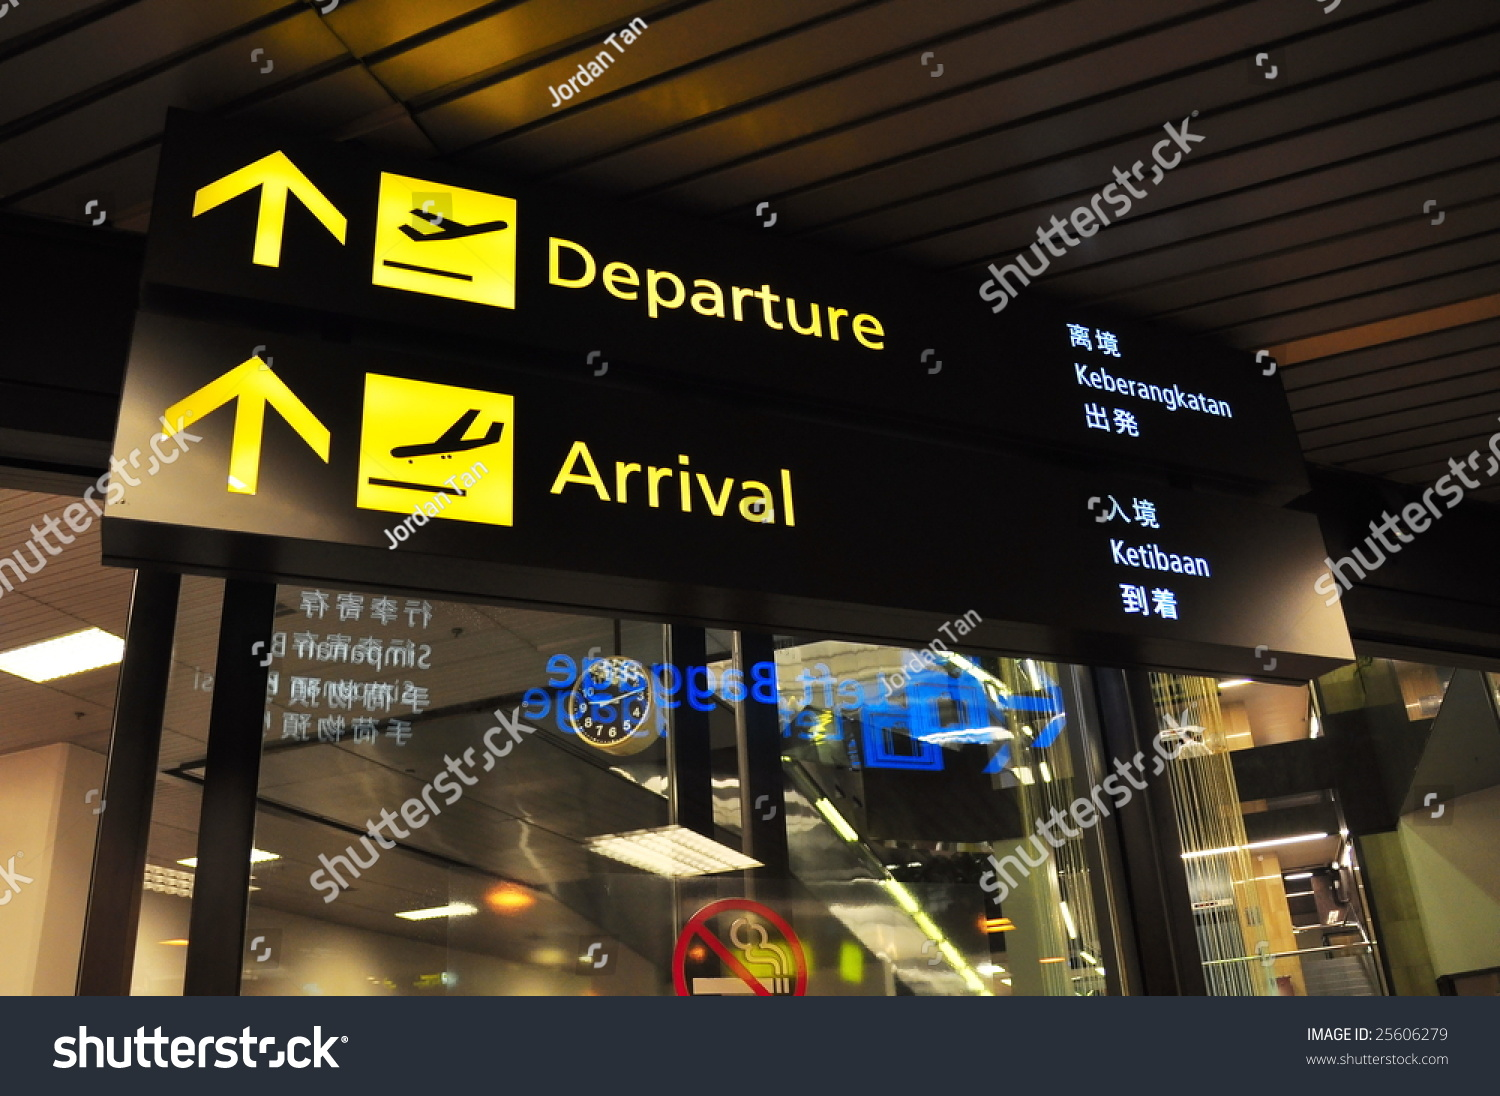 Departure Arrival Signage Airport Multiple Languages Stock Photo Edit Now 25606279